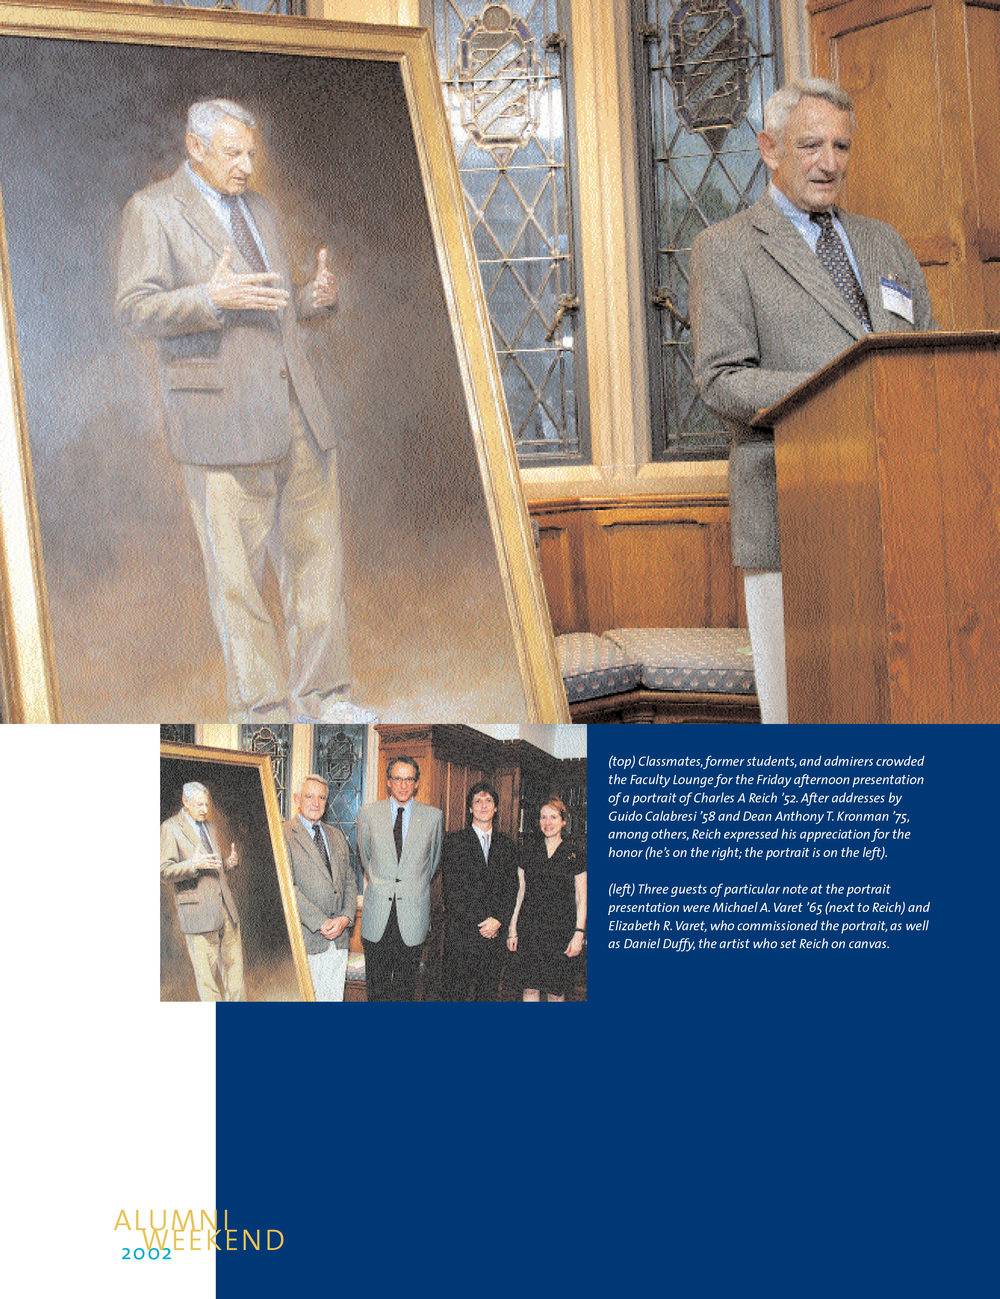 2002-05-10--Portrait-of-Charles-Reich-unveiled-at-Yale-Law-School-alum_wknd-4.jpg